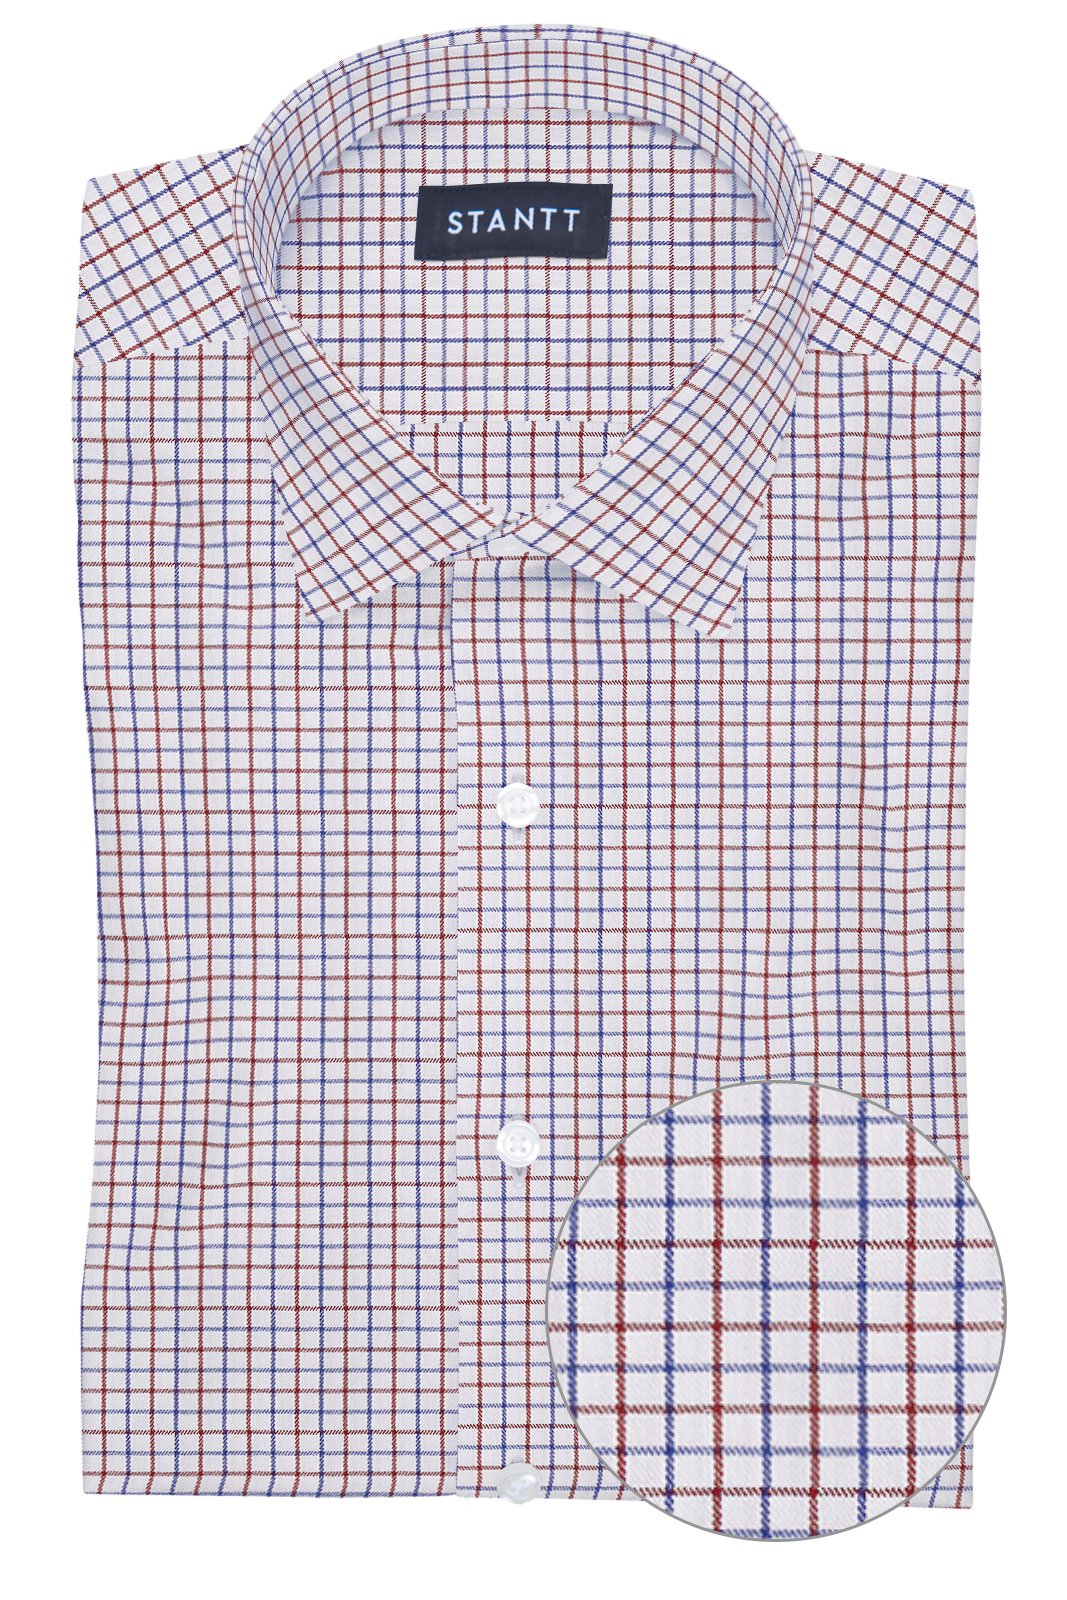 Performance Red and Blue Grid Check: Modified-Spread Collar, French Cuff